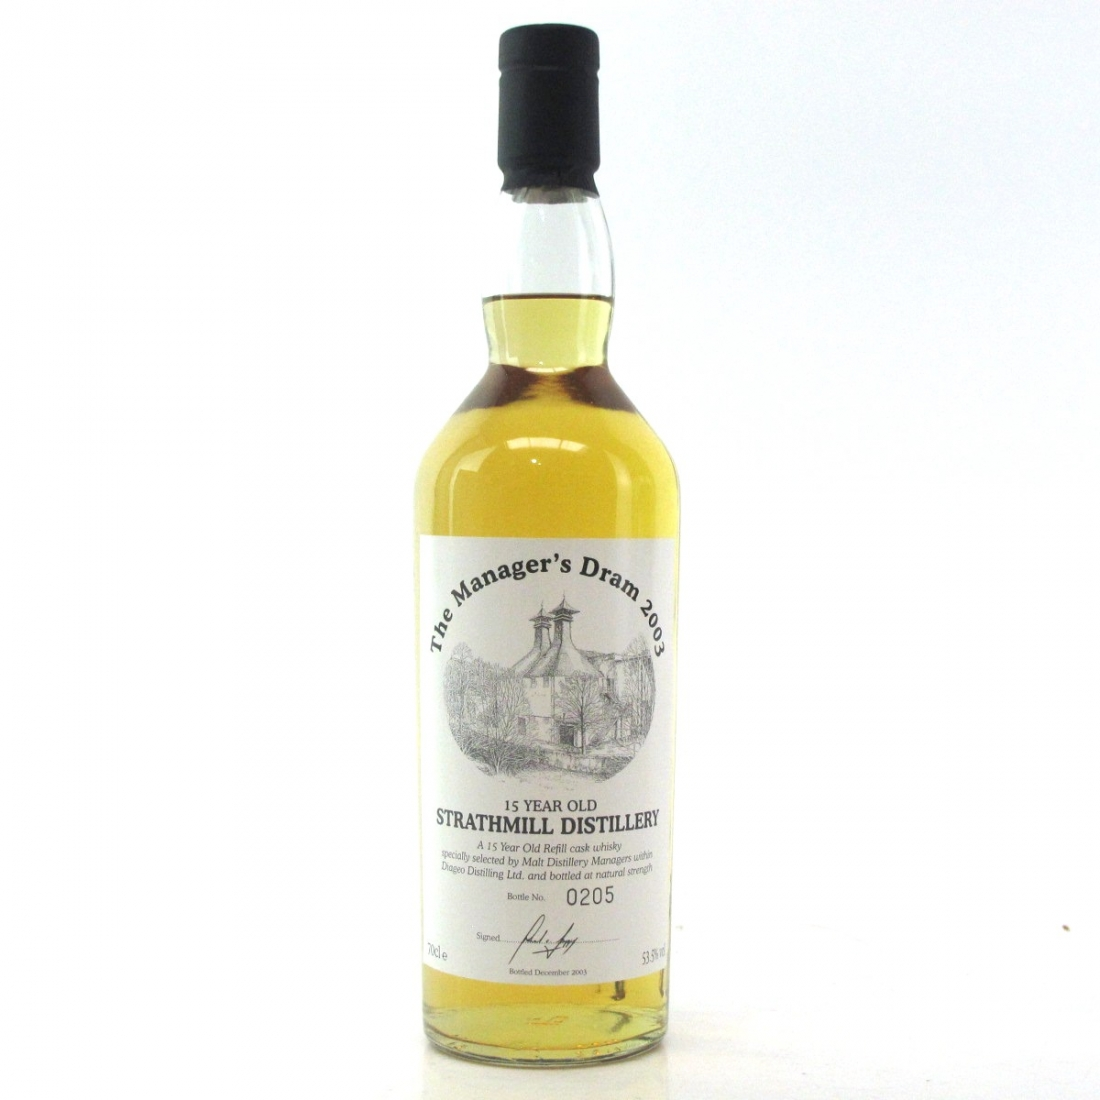 Strathmill 15 Year Old Managers Dram 2003